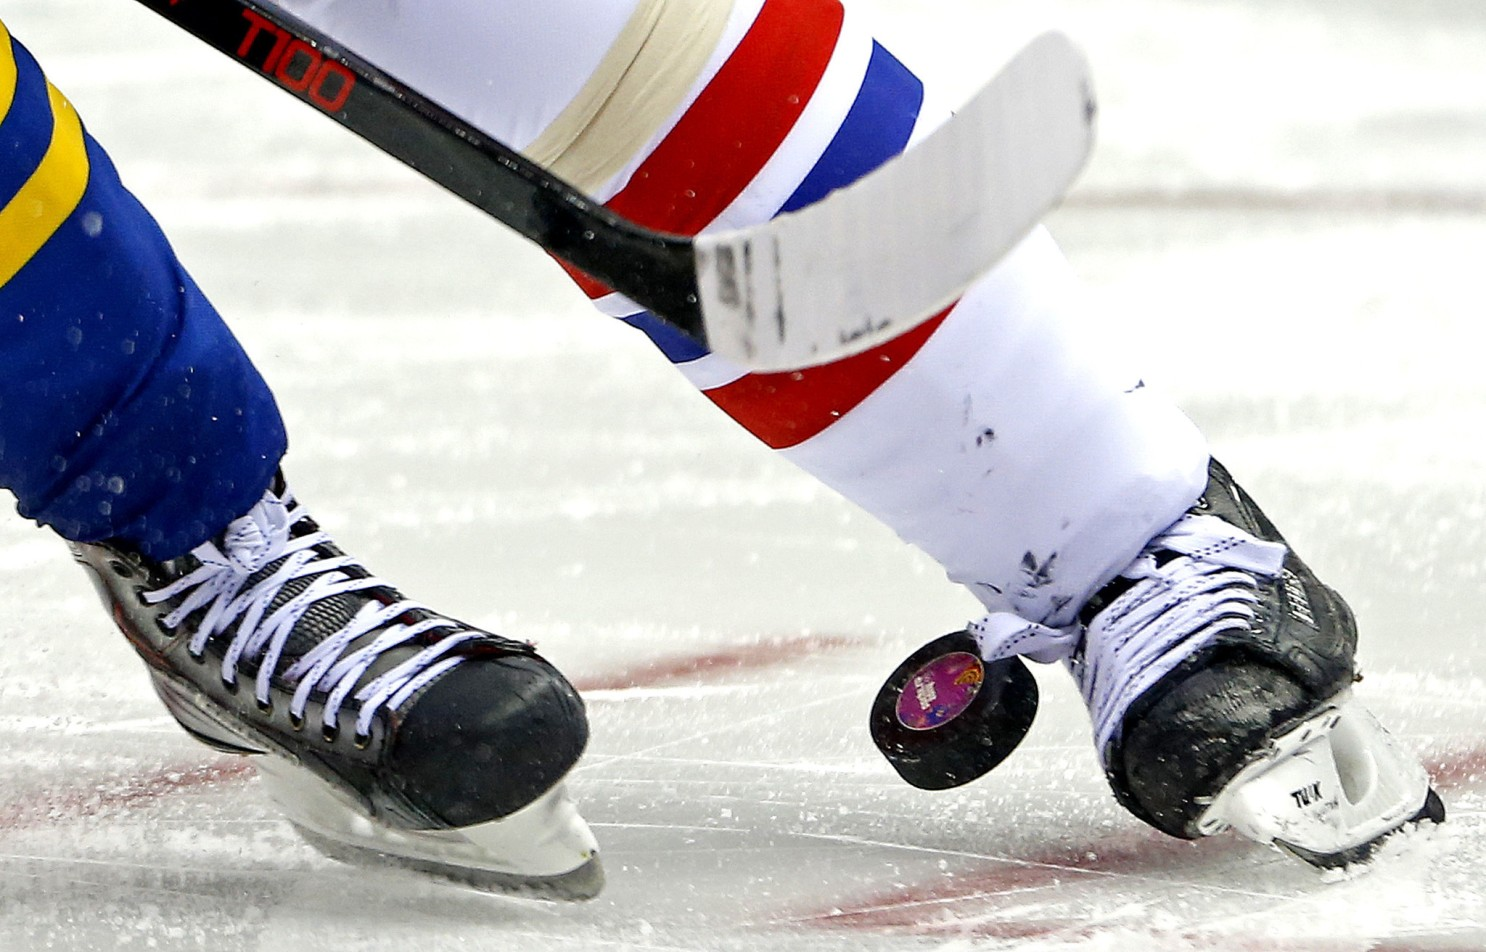 Coronavirus trounces both teams in ill-fated hockey game - Los Angeles Times